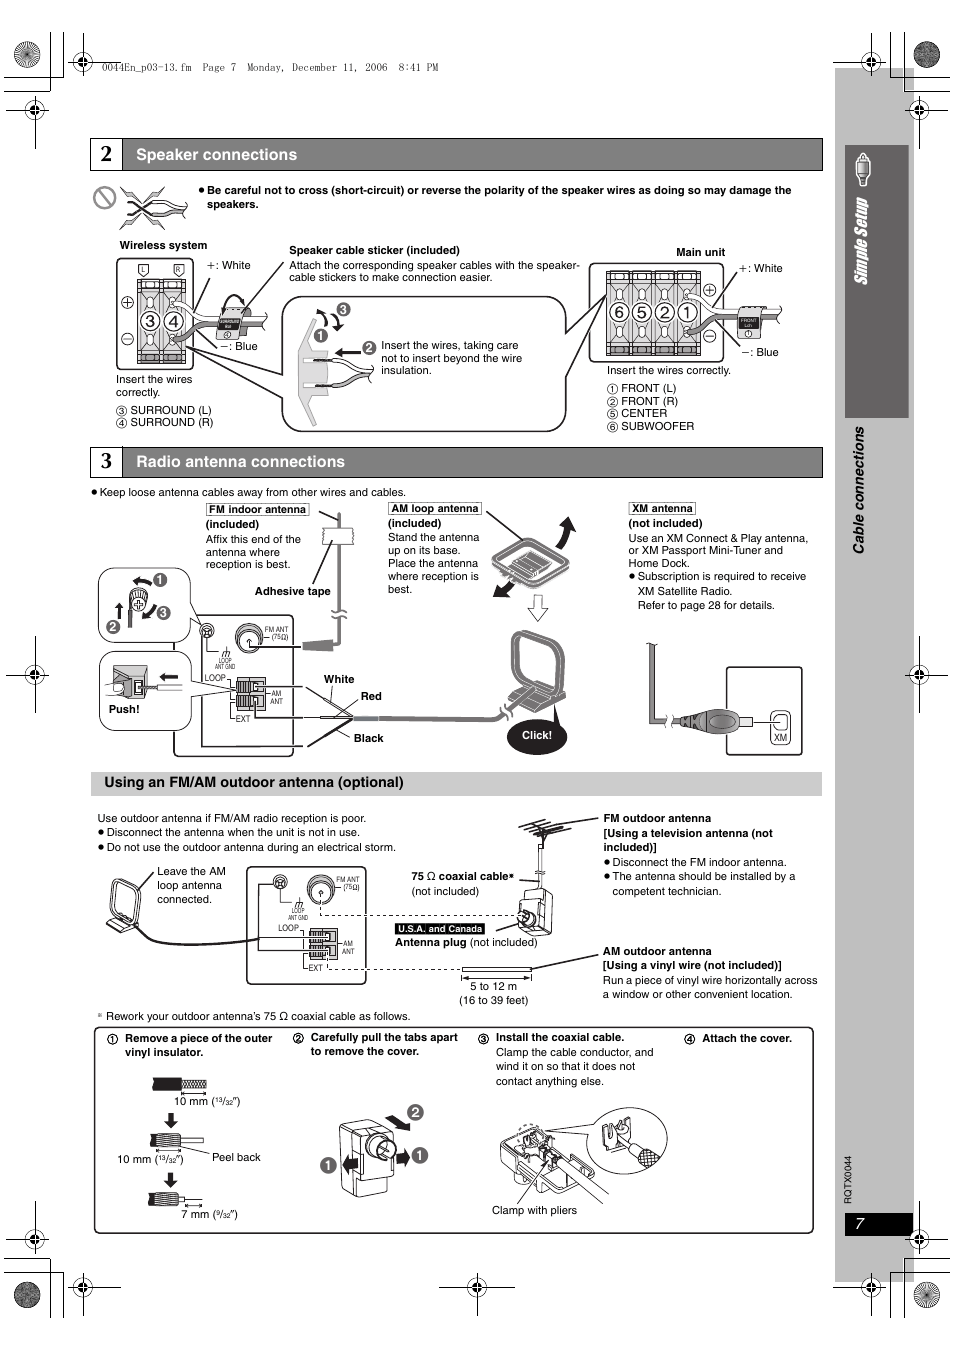 Speaker connections, Radio antenna connections, Si mp le s